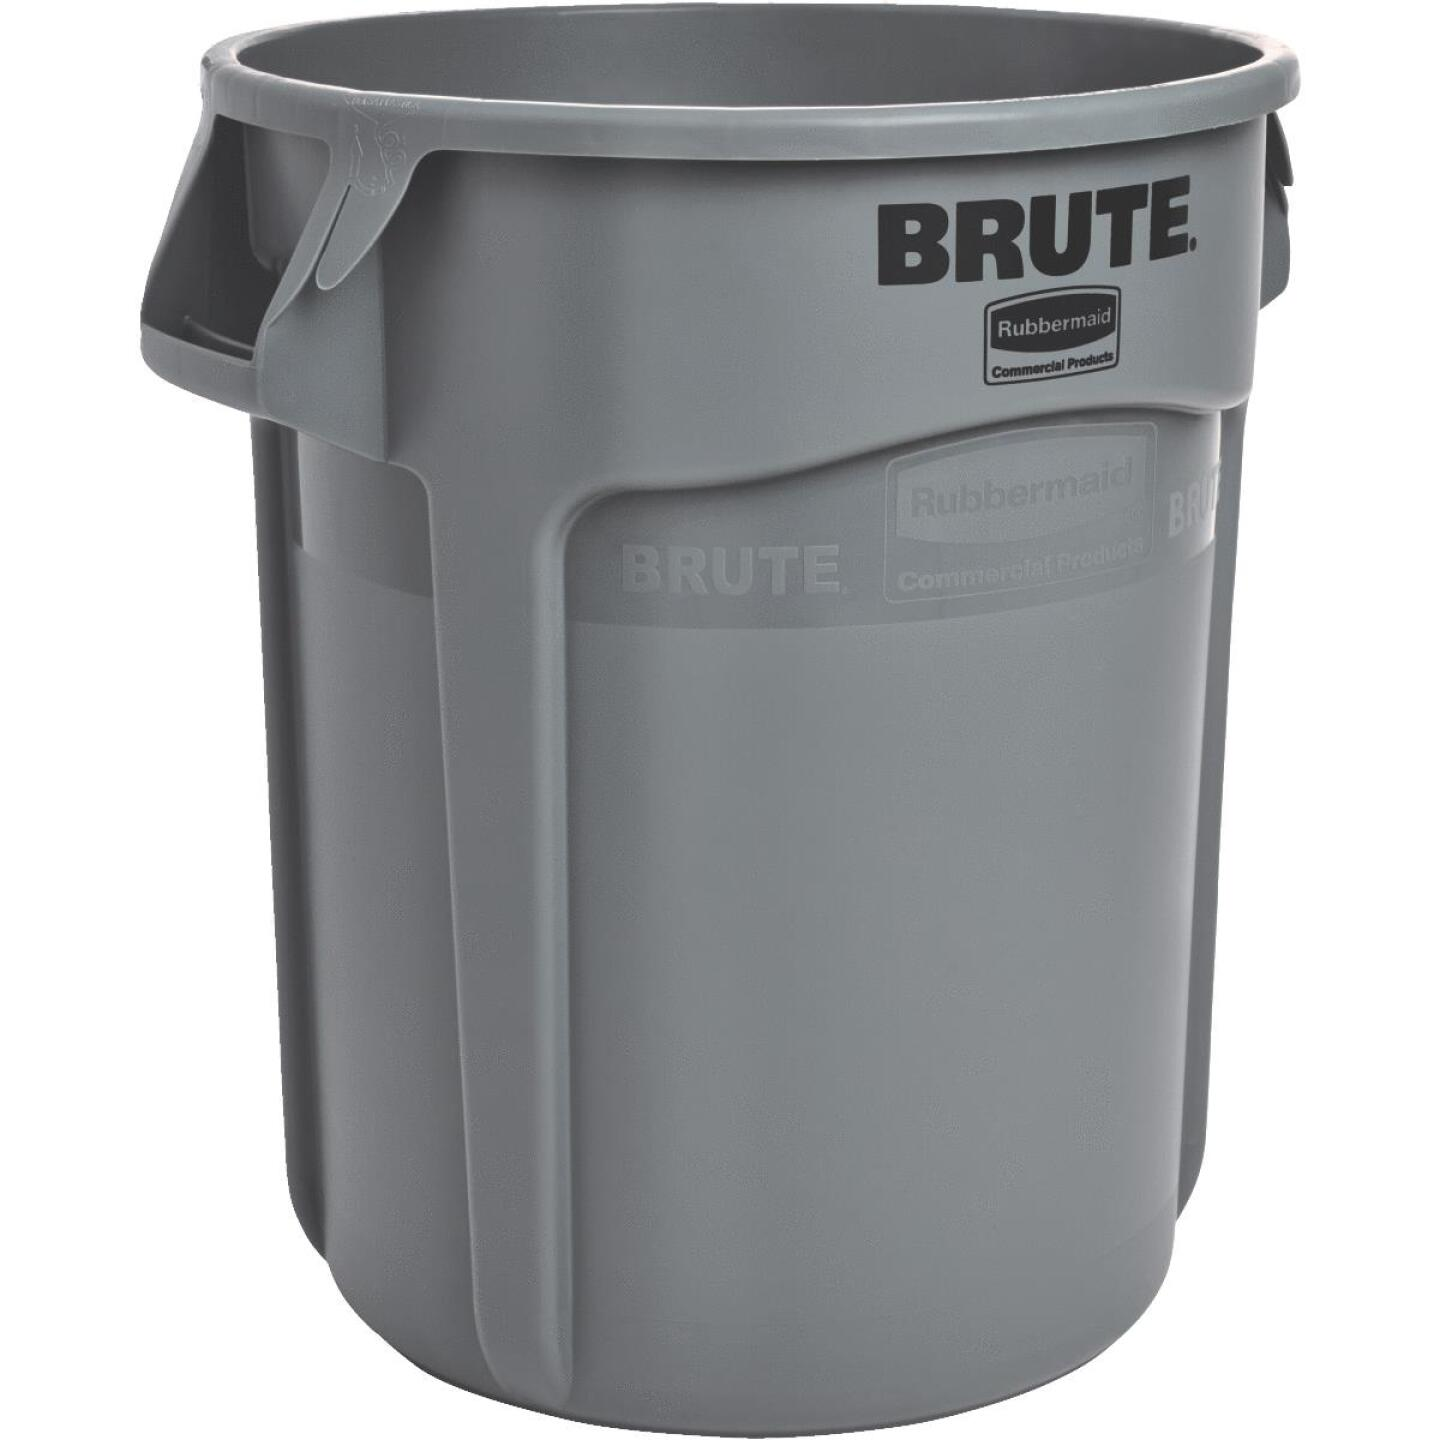 Rubbermaid Commercial Brute 20 Gal. Gray Vented Trash Can Image 1